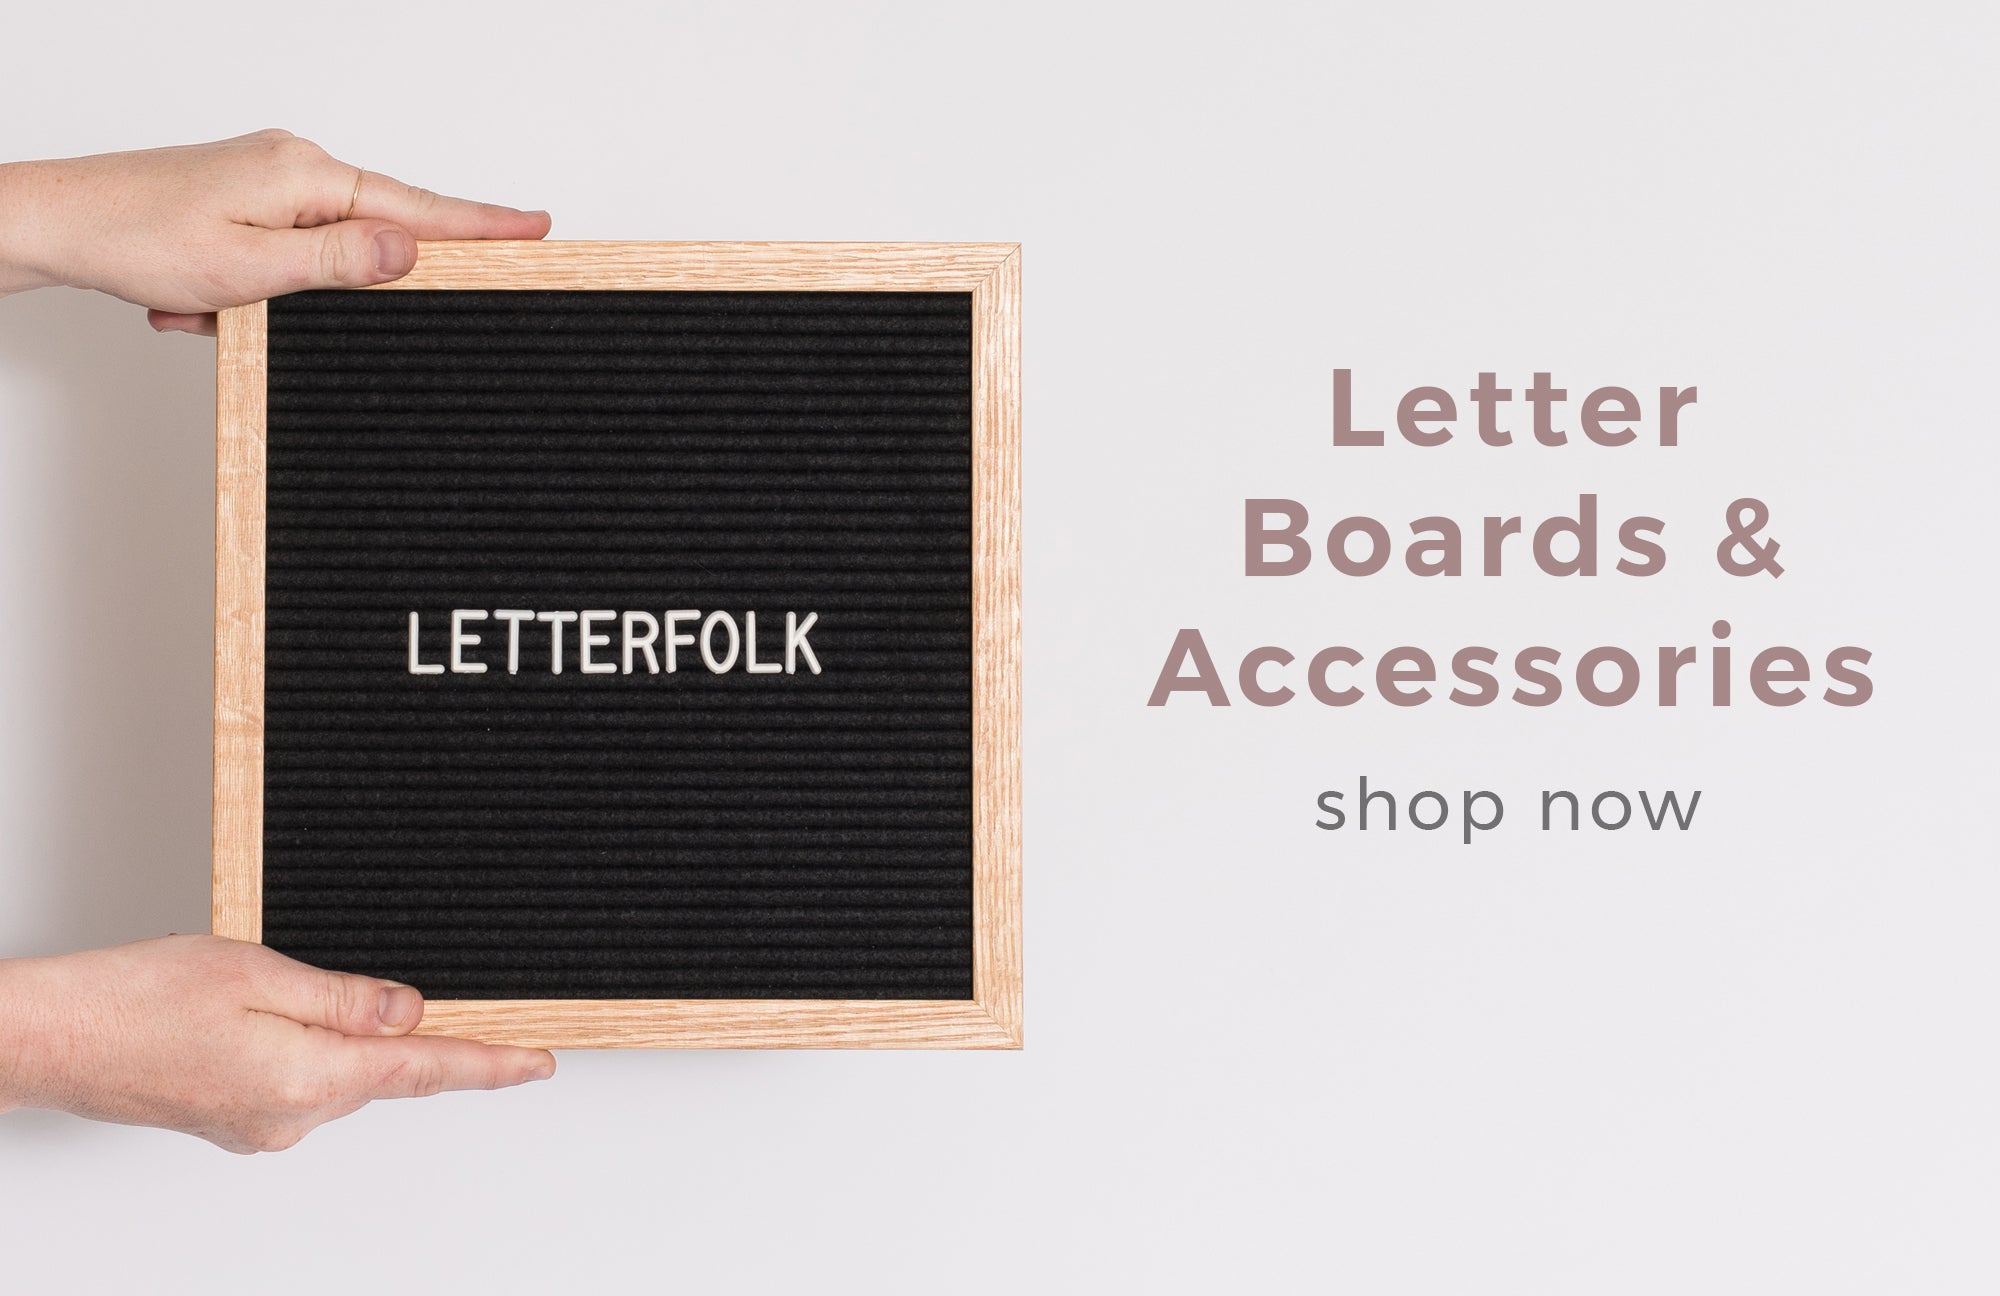 Letter Boards by Letterfolk